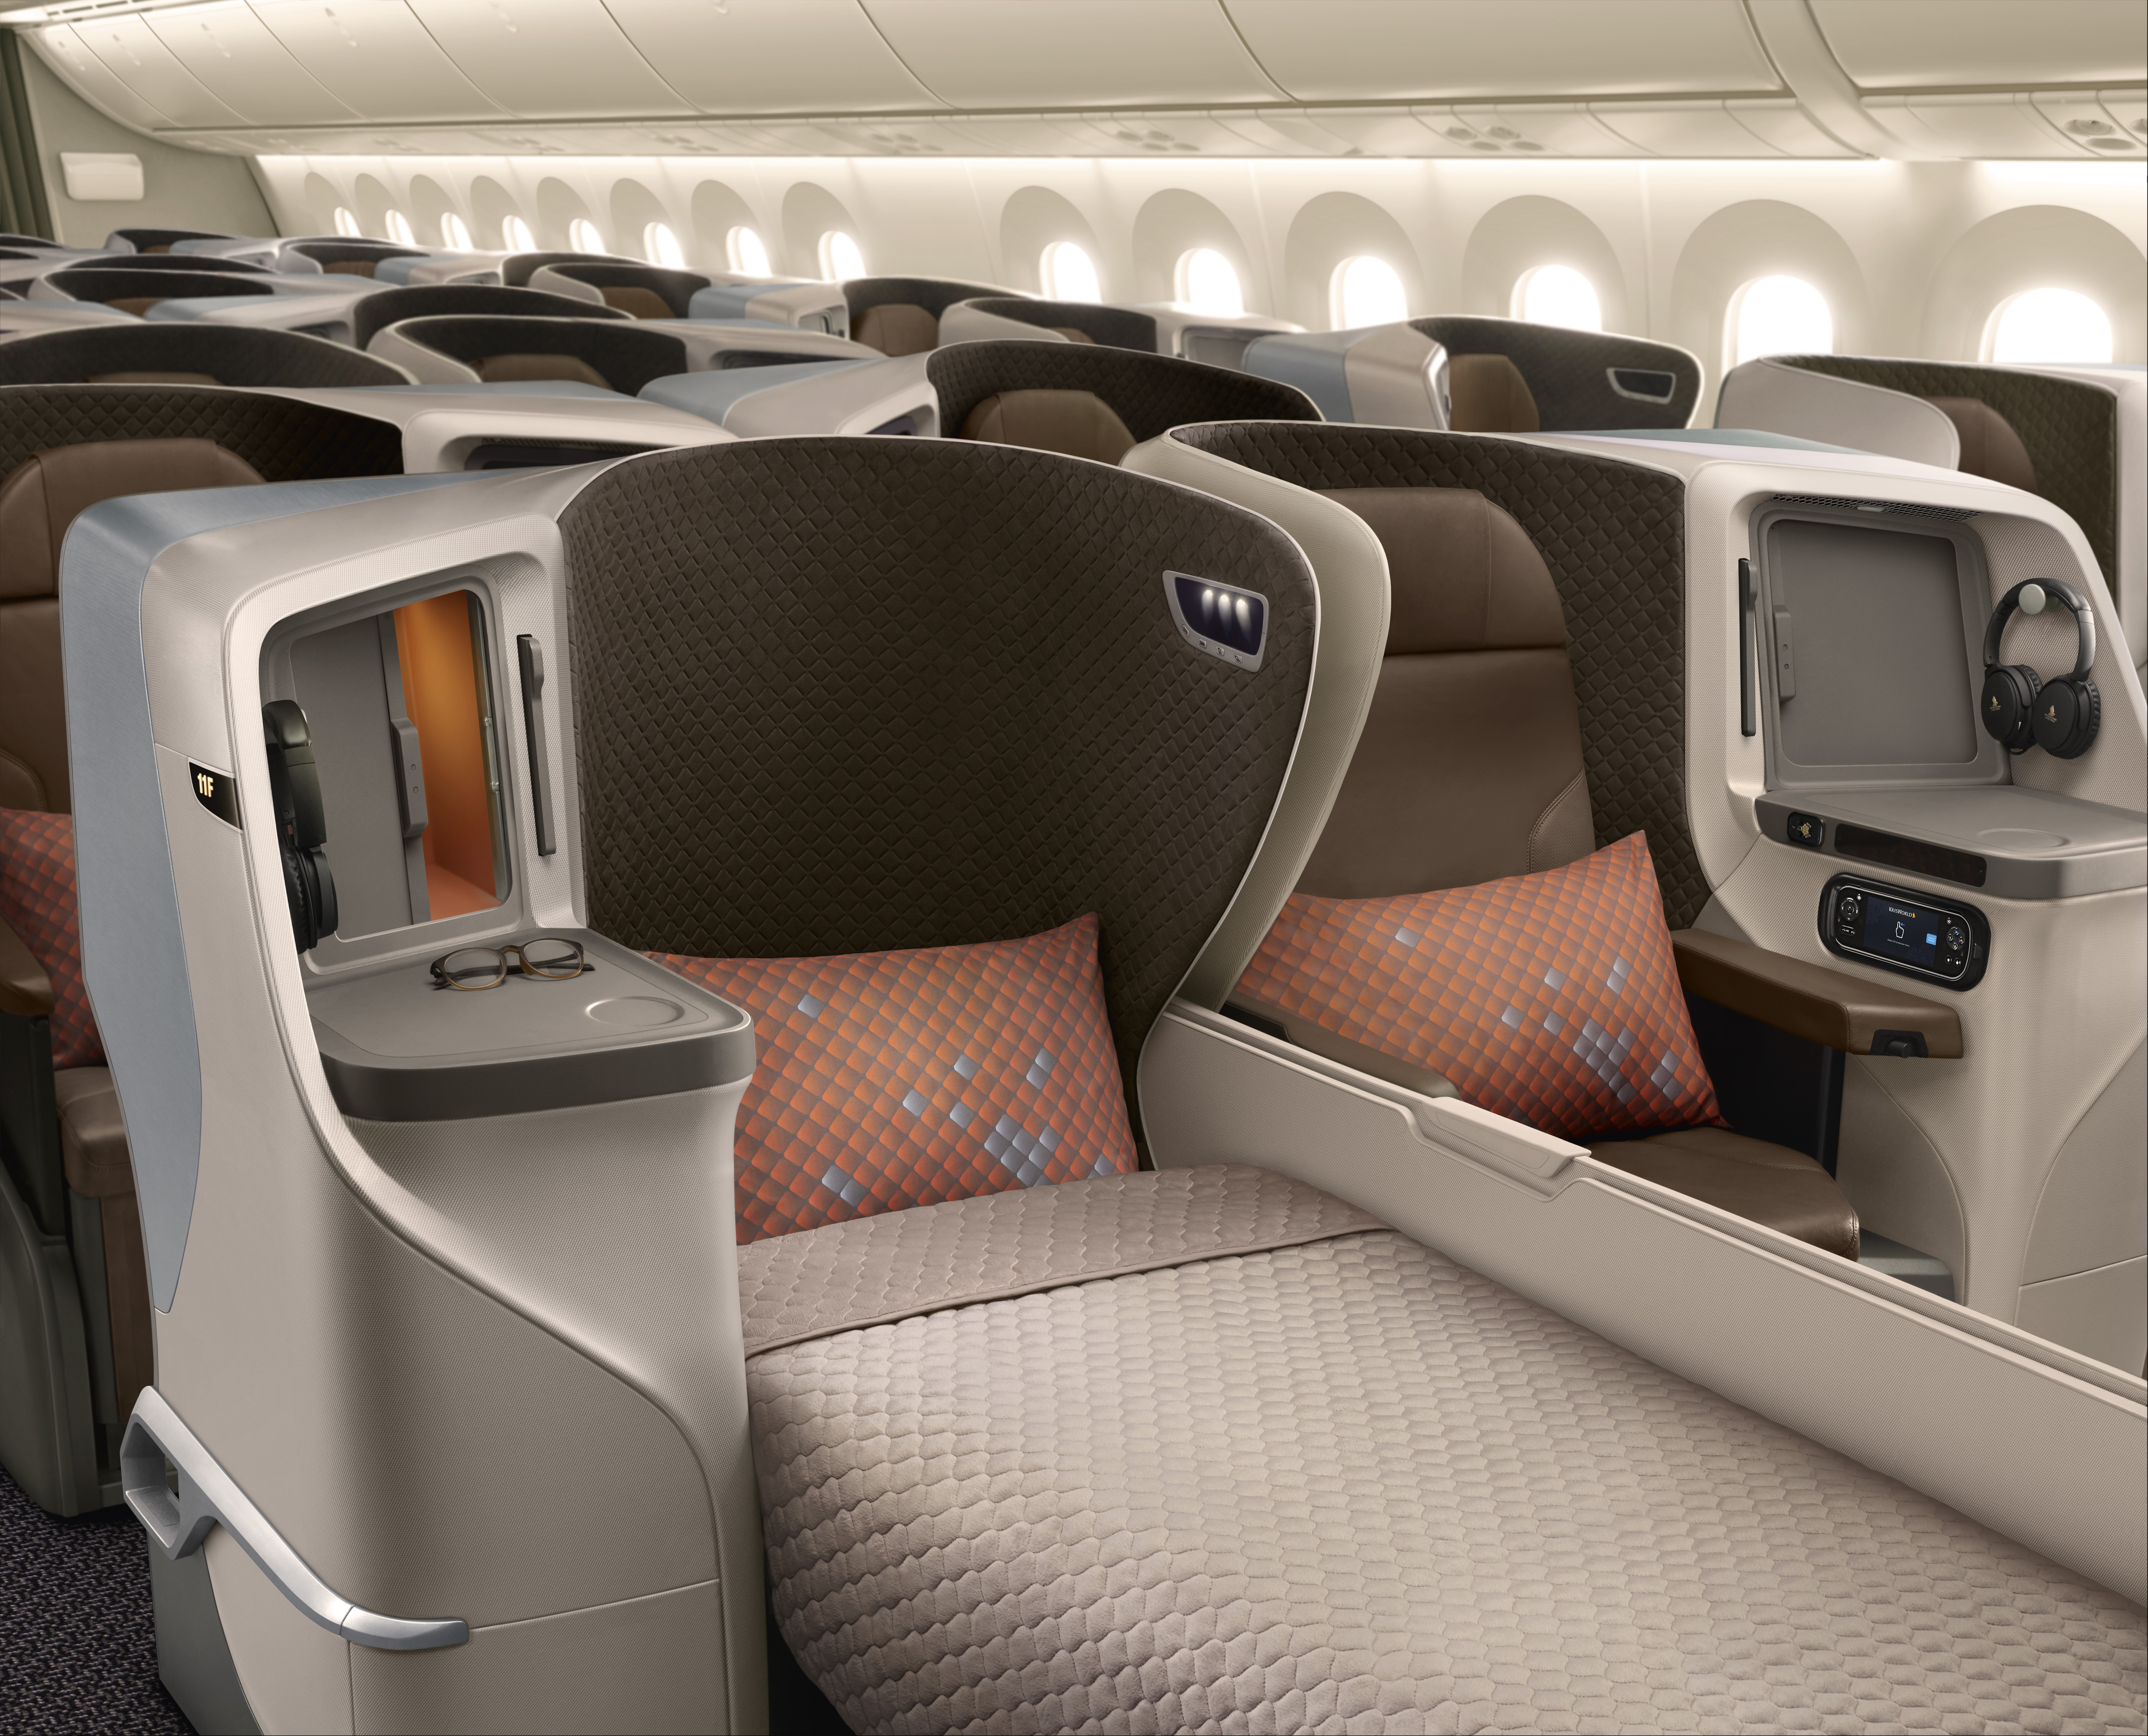 Singapore Airlines Boeing 787-10 Business Class